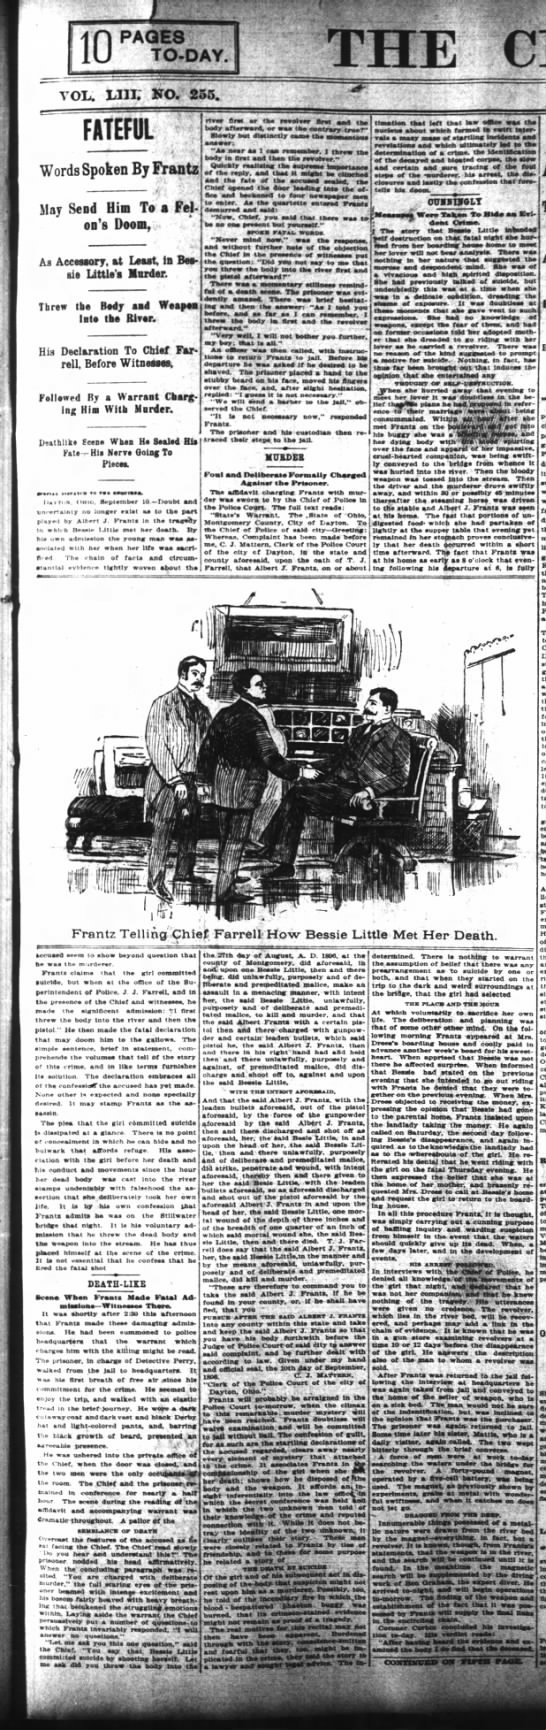 11 September 1896 Cincinnati Enquirer - 10 PAGES TO-DAY. rm E, G vol; Lin; ko. 255....